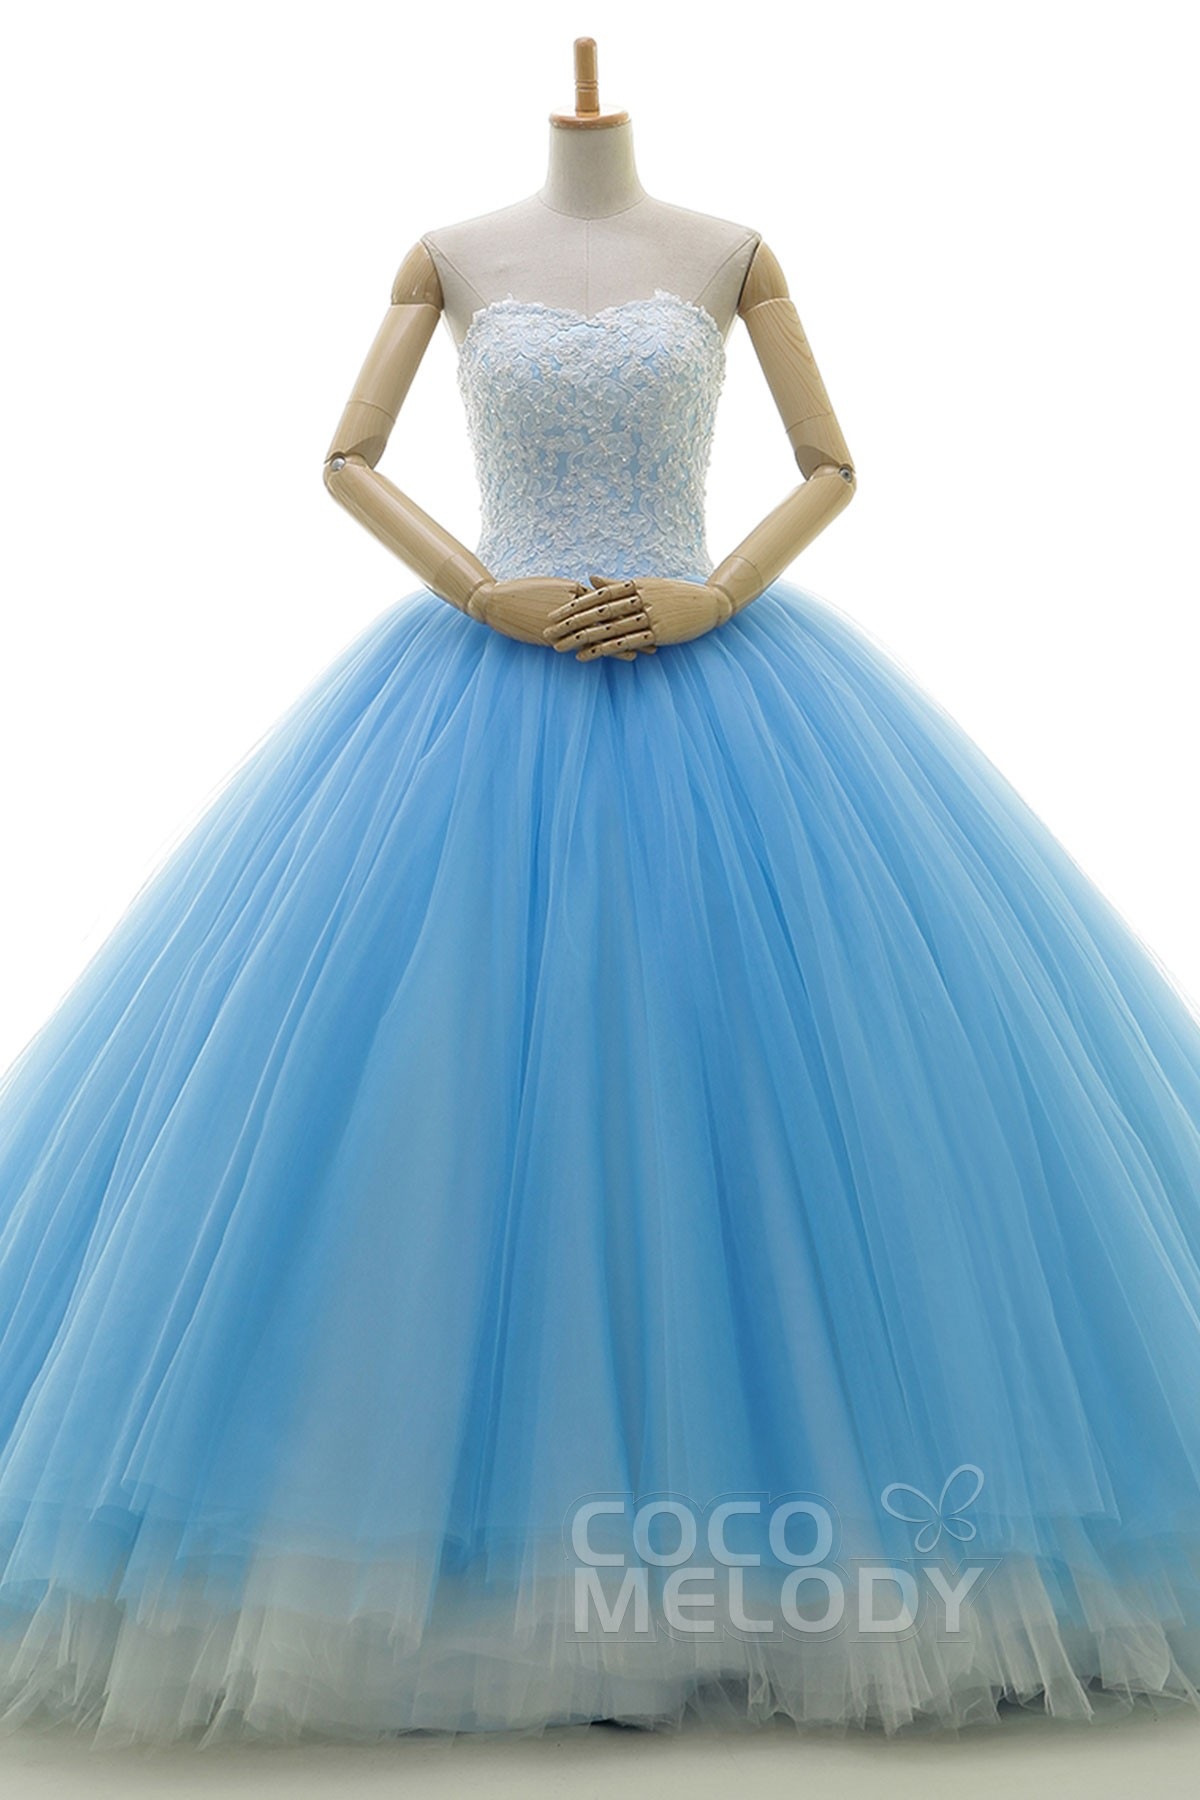 Cocomelody: Princess Chapel Train Tulle Wedding Dress Beading ...